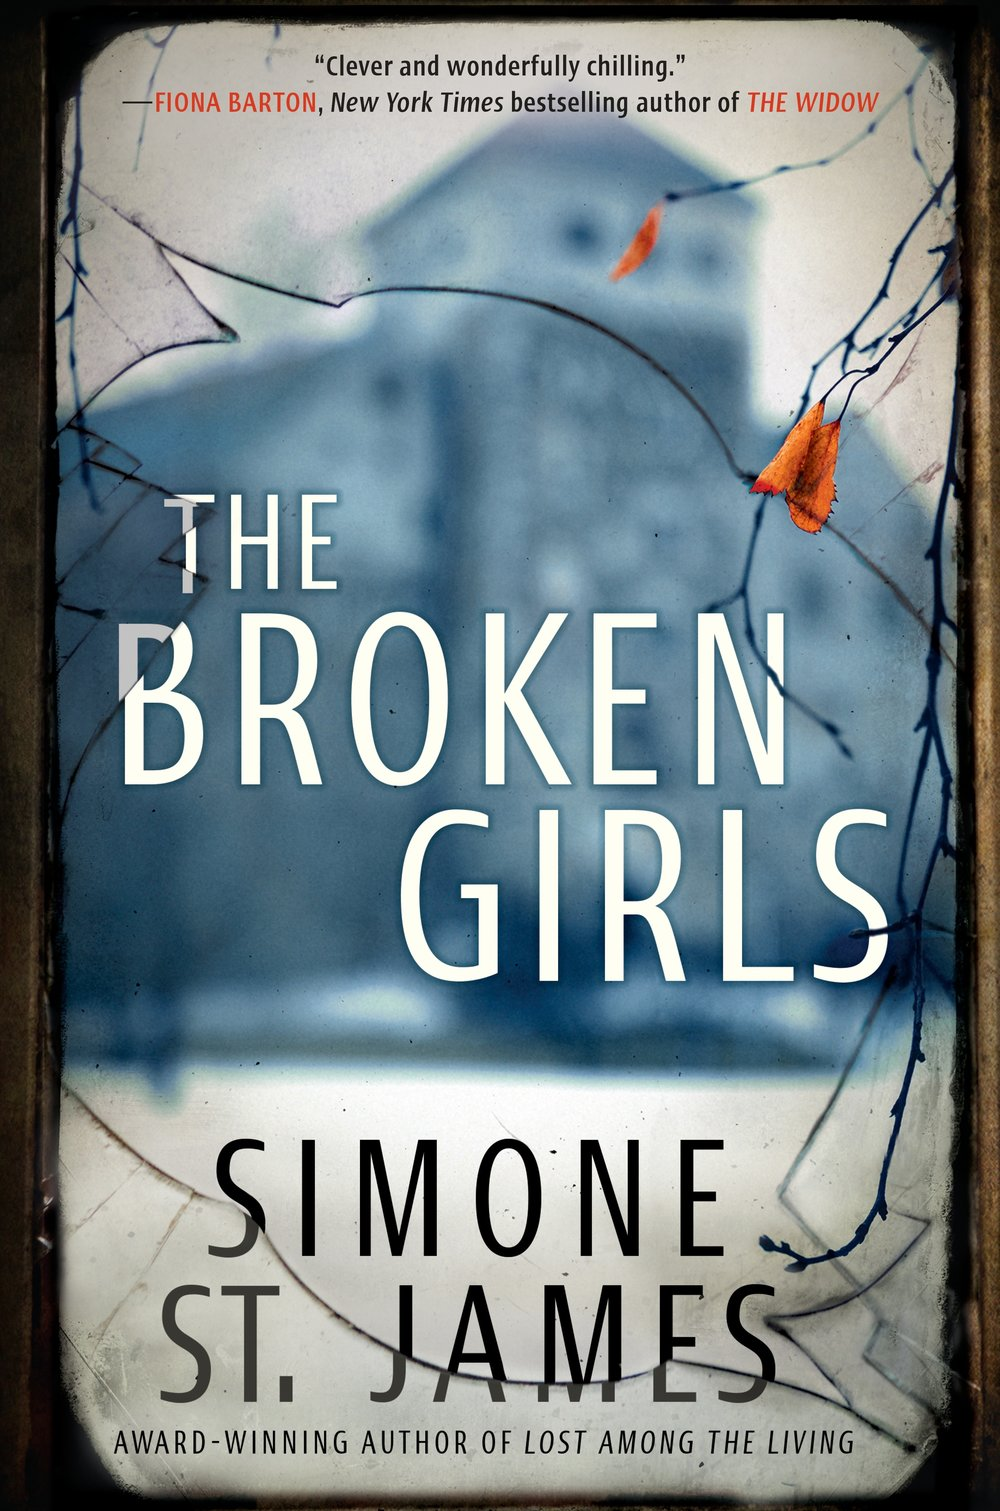 Simone St. James The Broken Girls.jpg